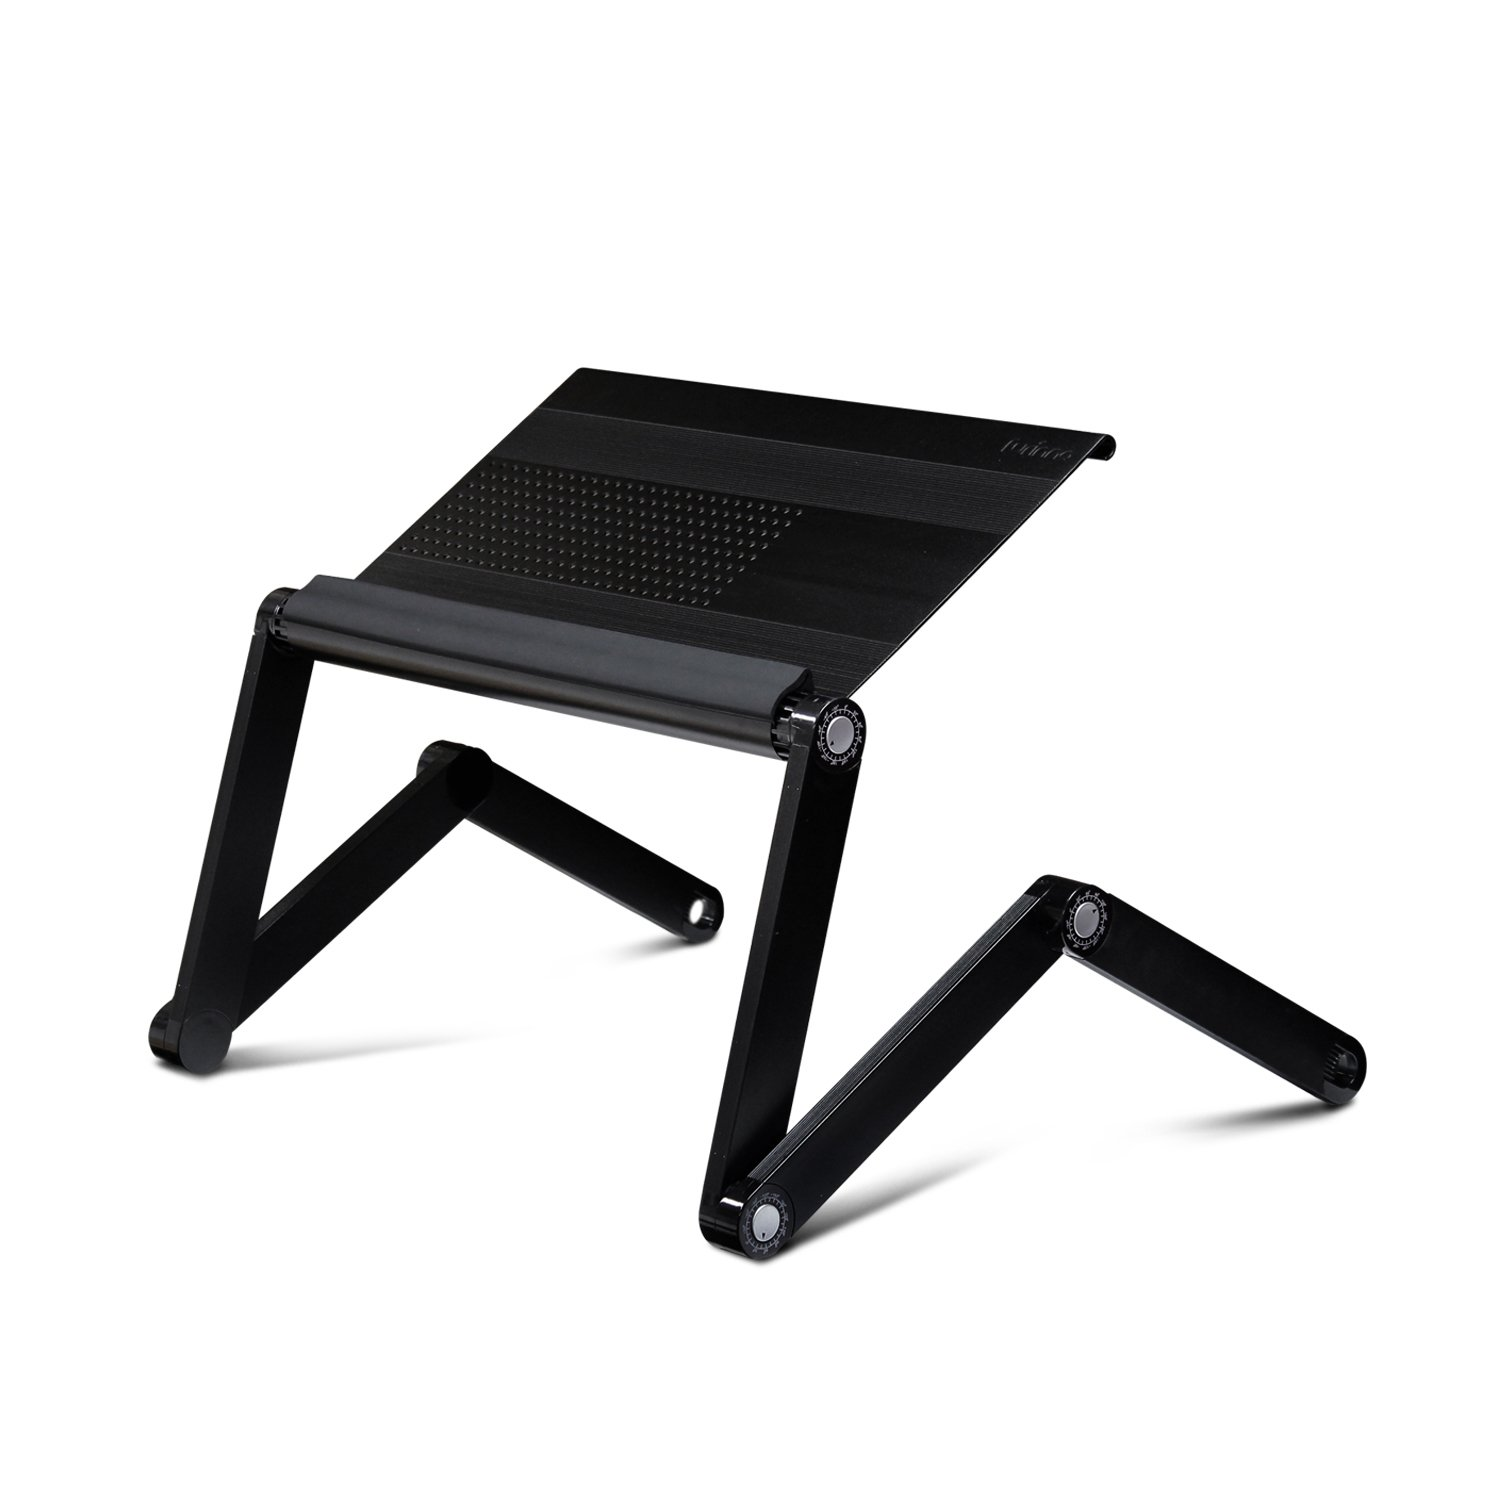 stand coffee shop table desk costway folding car bed tray sofa rakuten for laptop product notebook portable